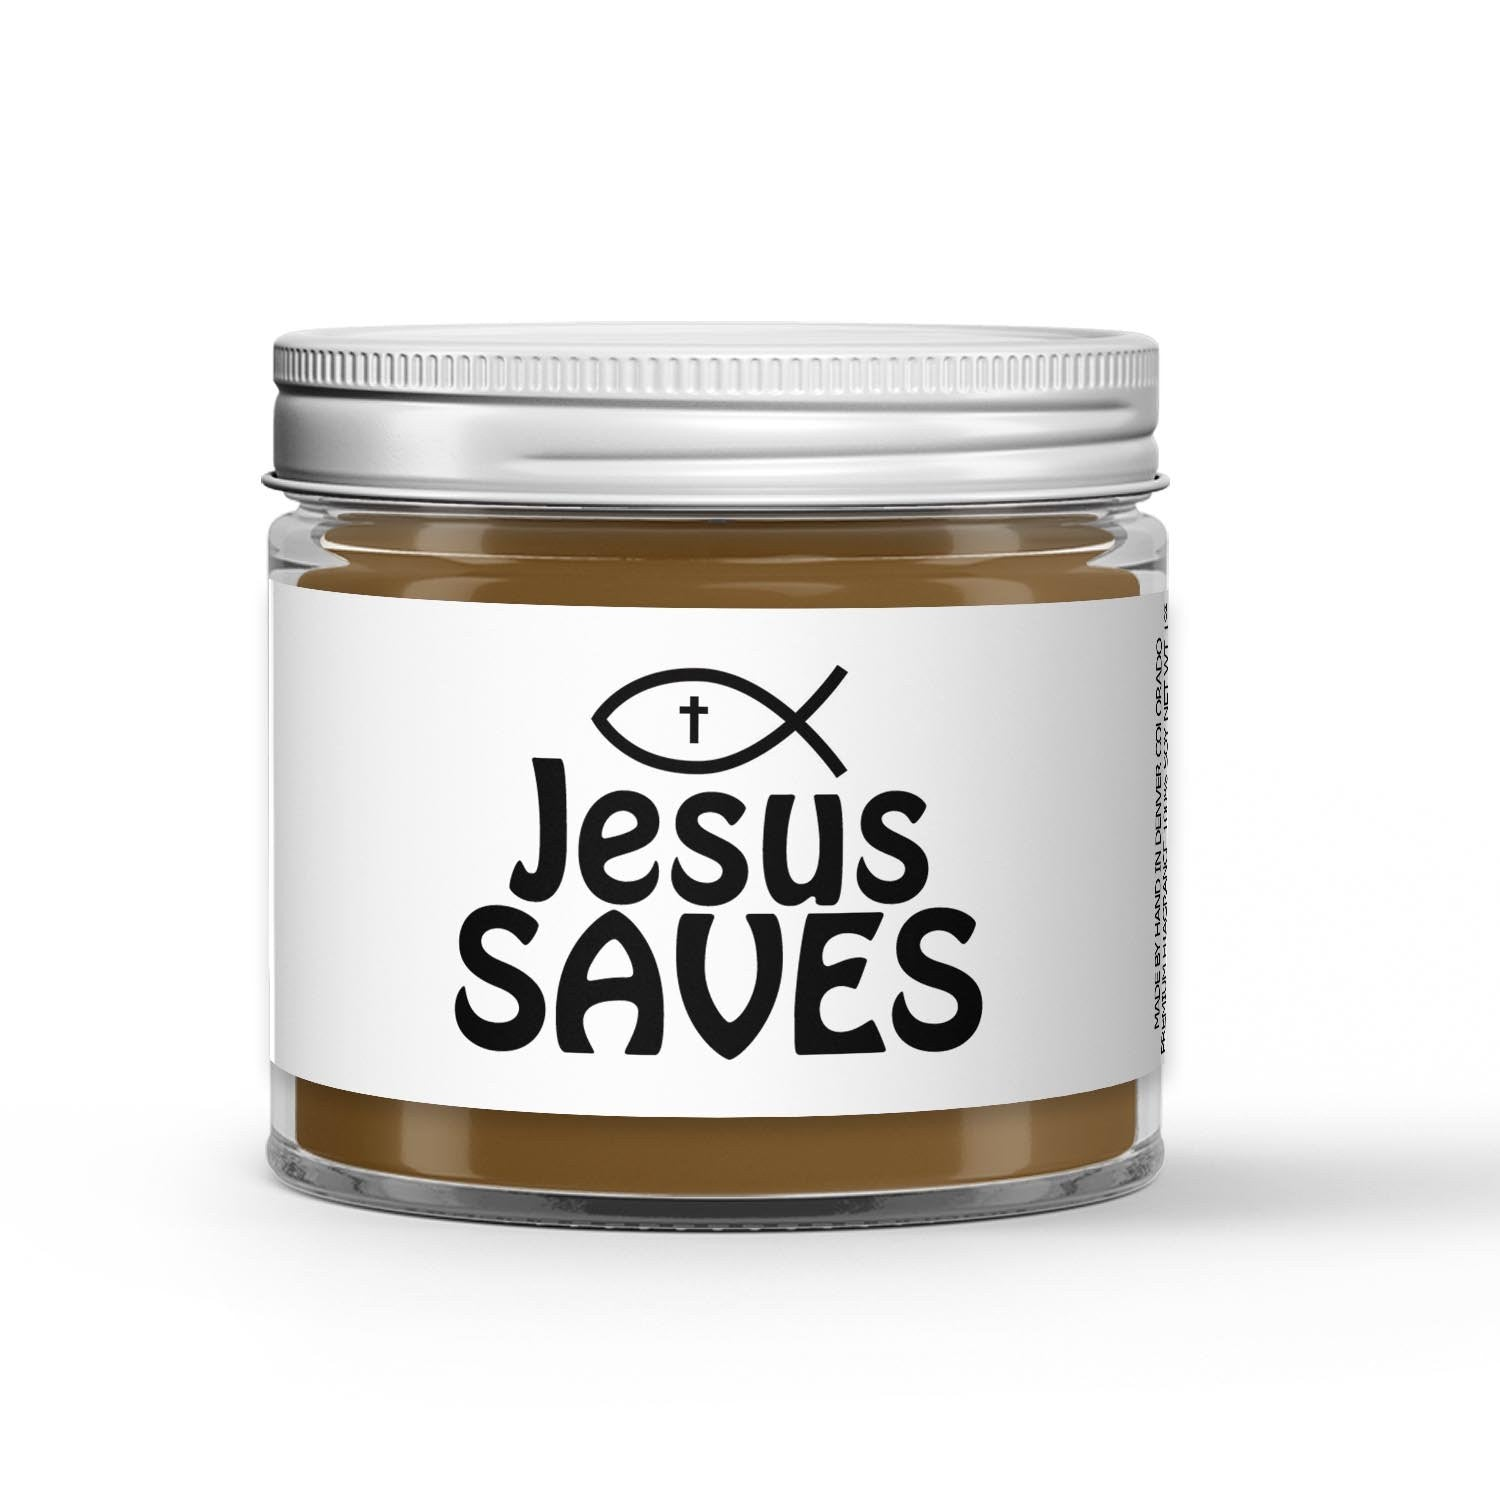 Jesus Saves Candle - Vanilla Chestnut - 1oz Adorable Size Candle® - Dio Candle Company